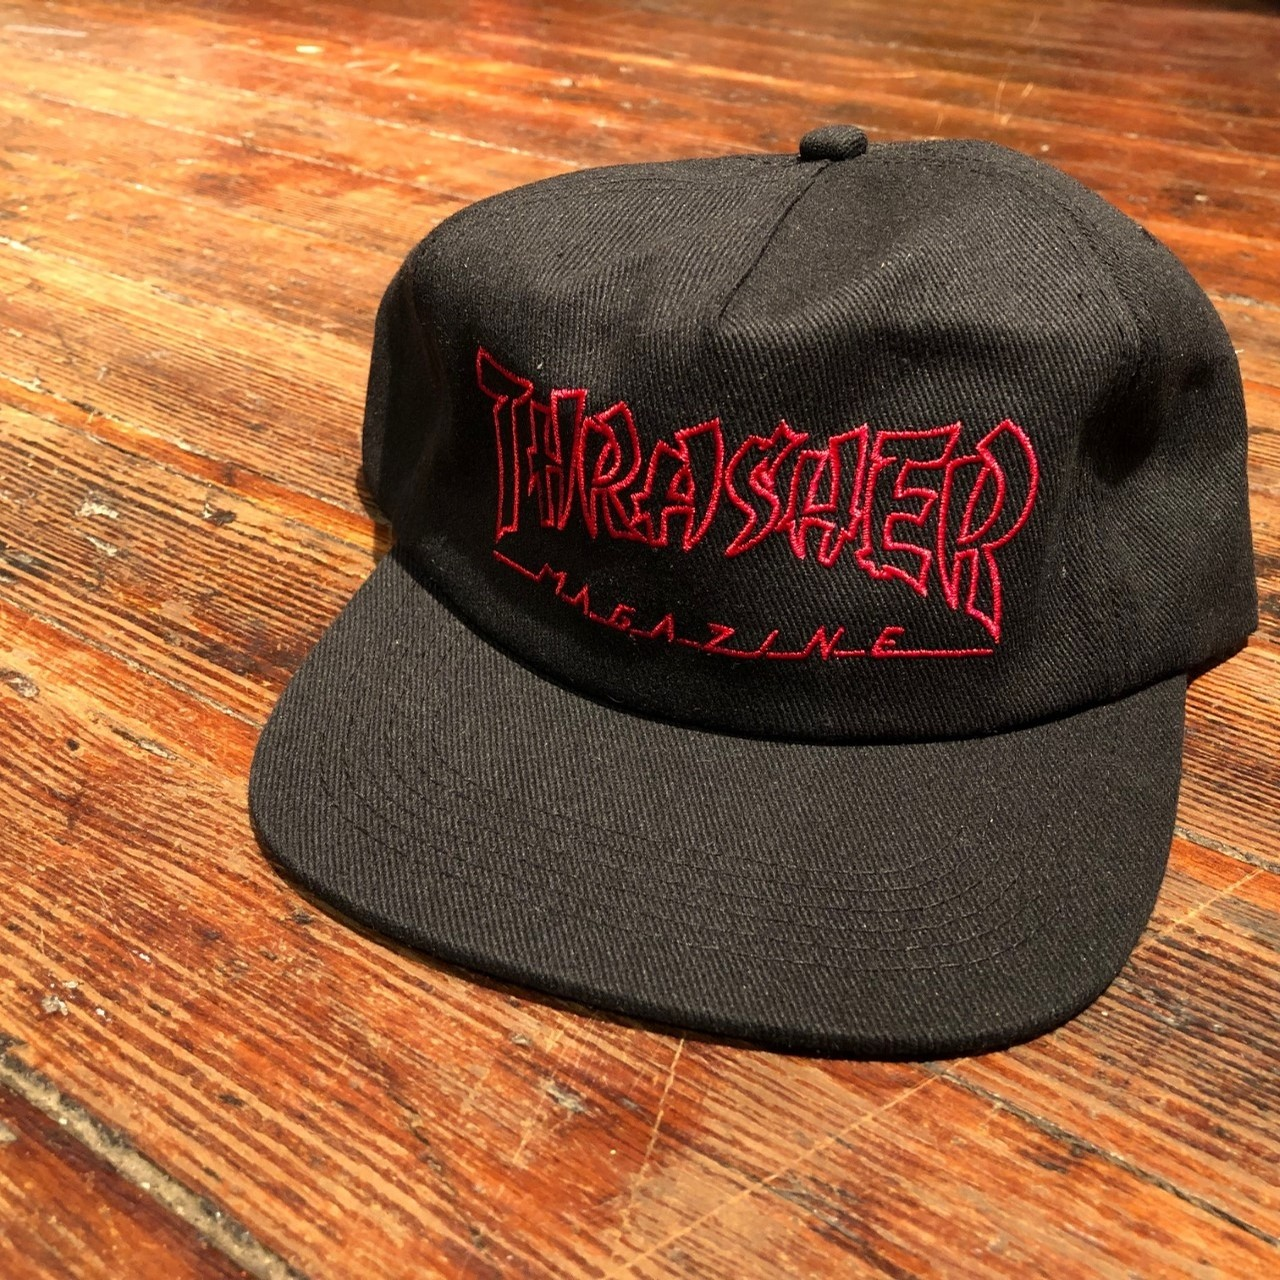 CHINA BANKS SNAPBACK (BLACK)